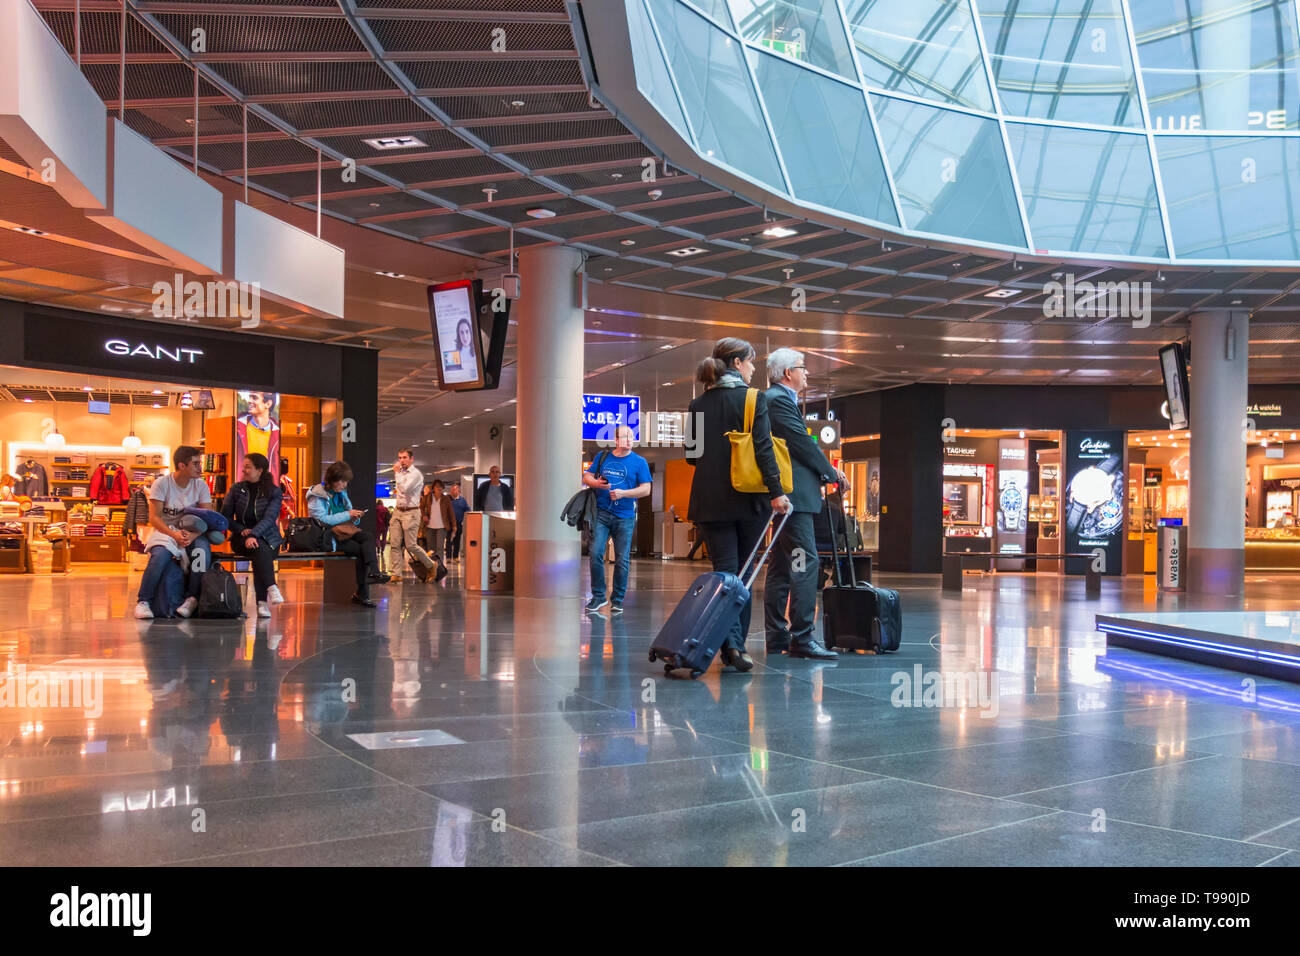 Shopping street in an airport with people - Stock Image